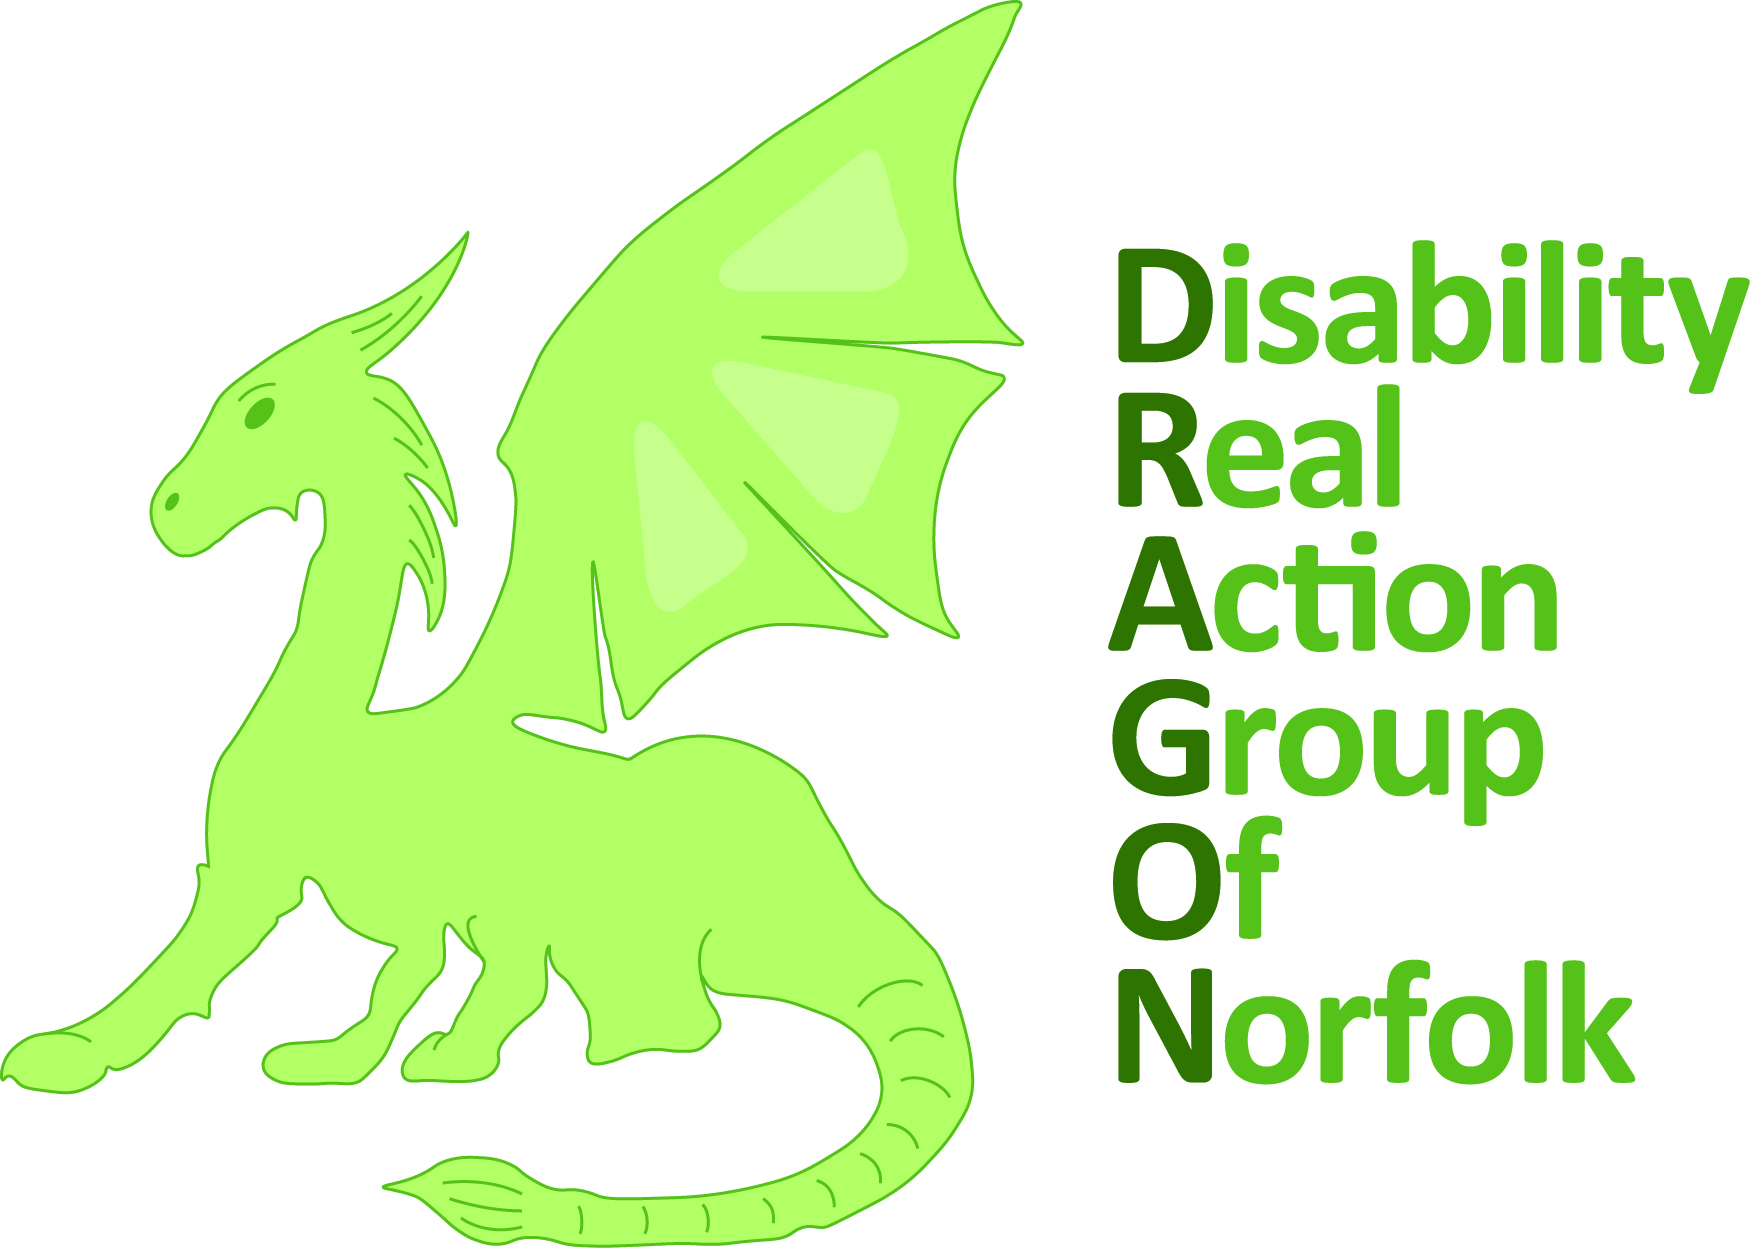 The logo for the Disability Real Action Group of Norfolk